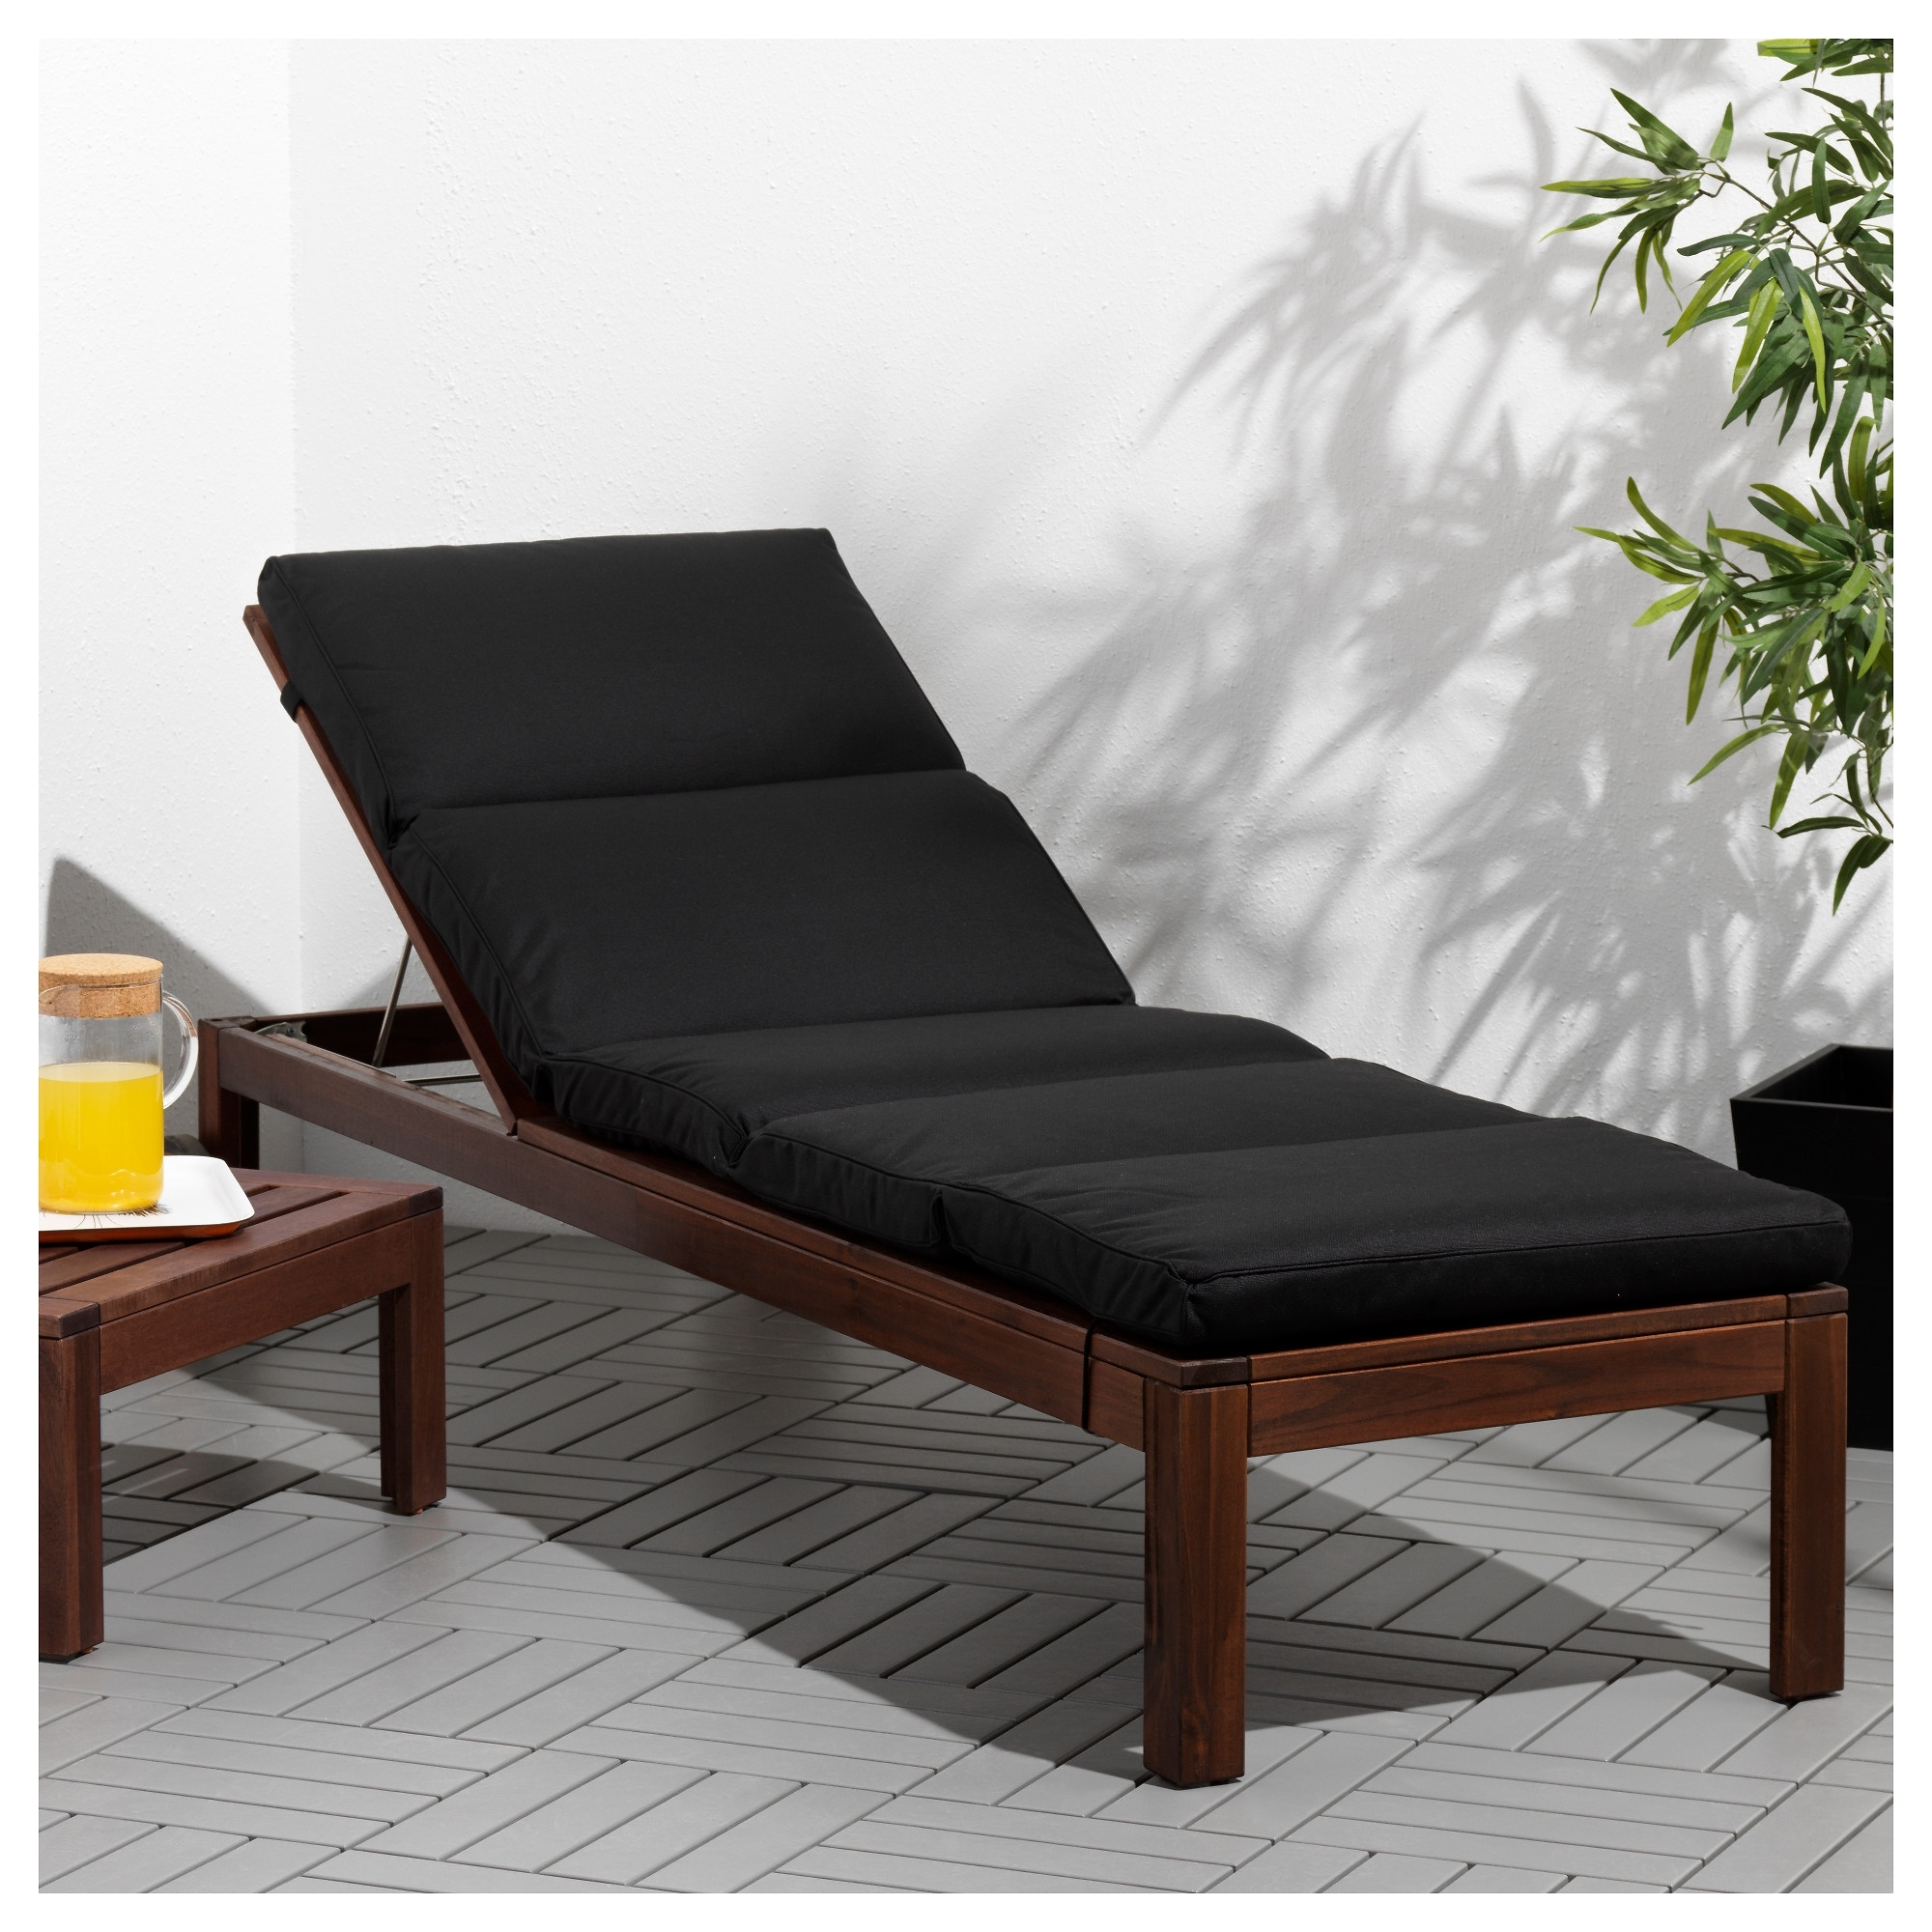 Preferred Web Chaise Lounge Lawn Chairs Intended For Outdoor : Patio Furniture Lounge Lounge Chairs For Bedroom Plastic (View 5 of 15)